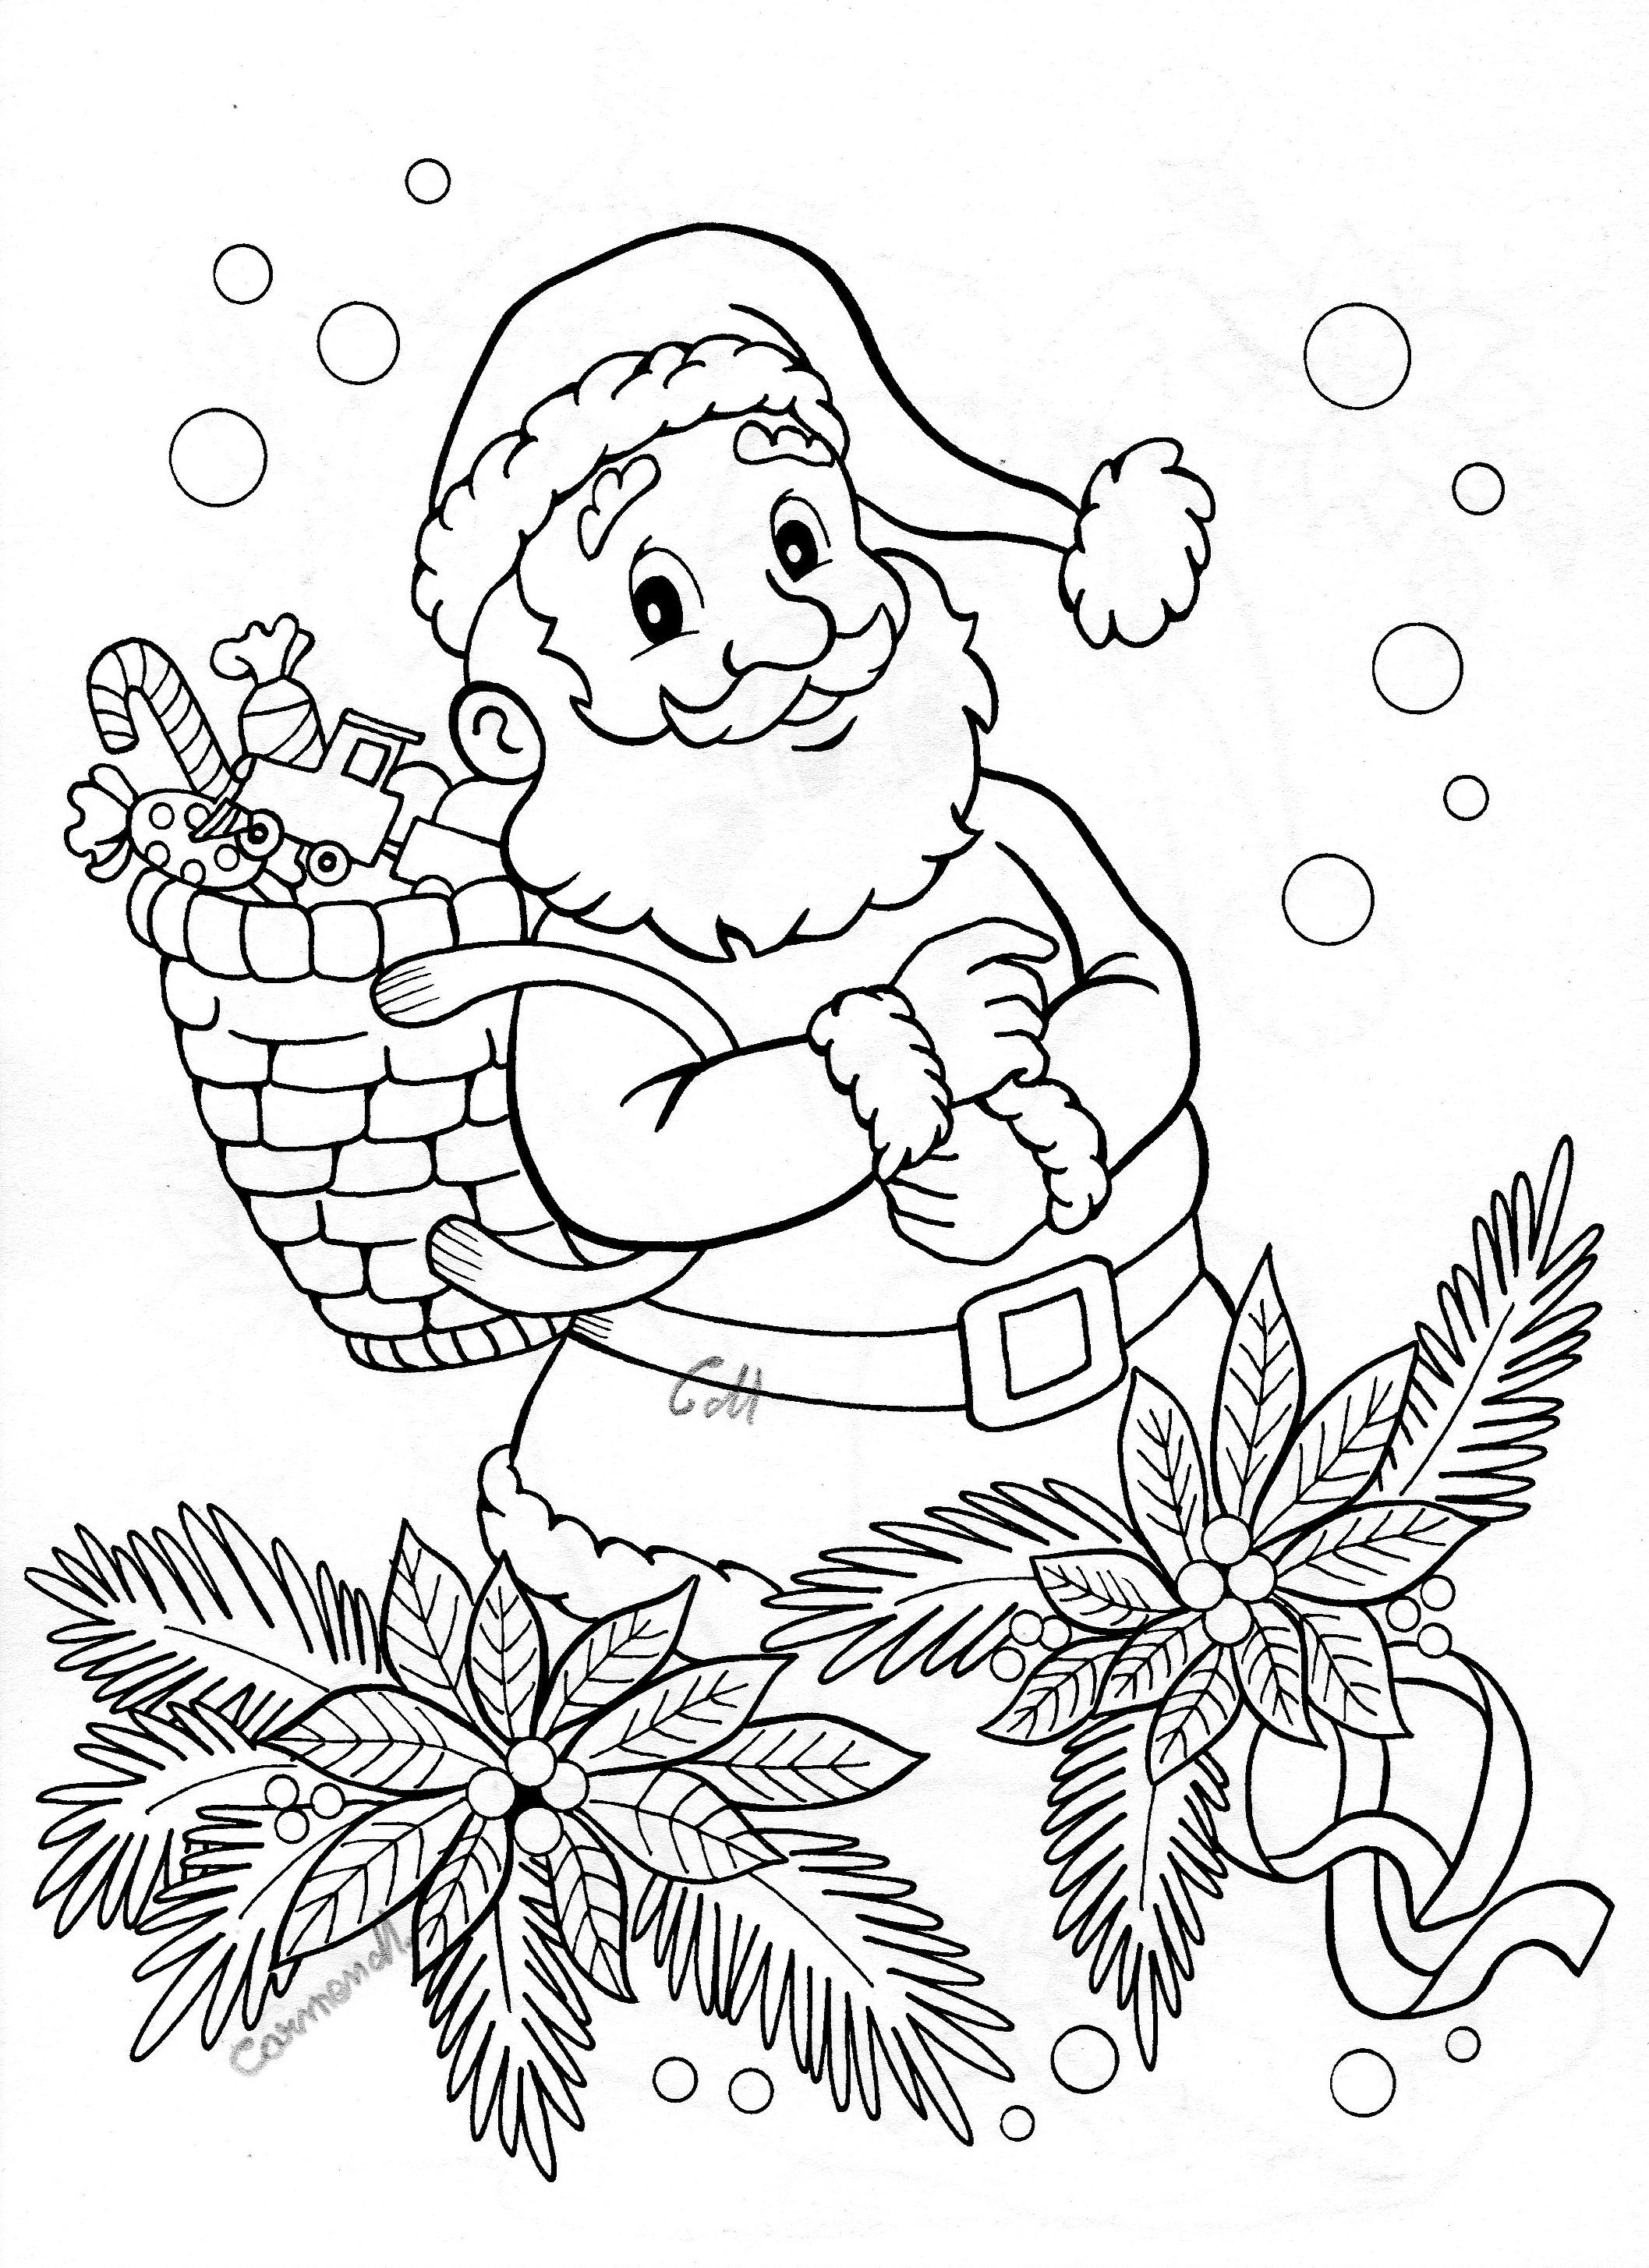 Pin by Diana Presley on Snowman Stitching Patterns